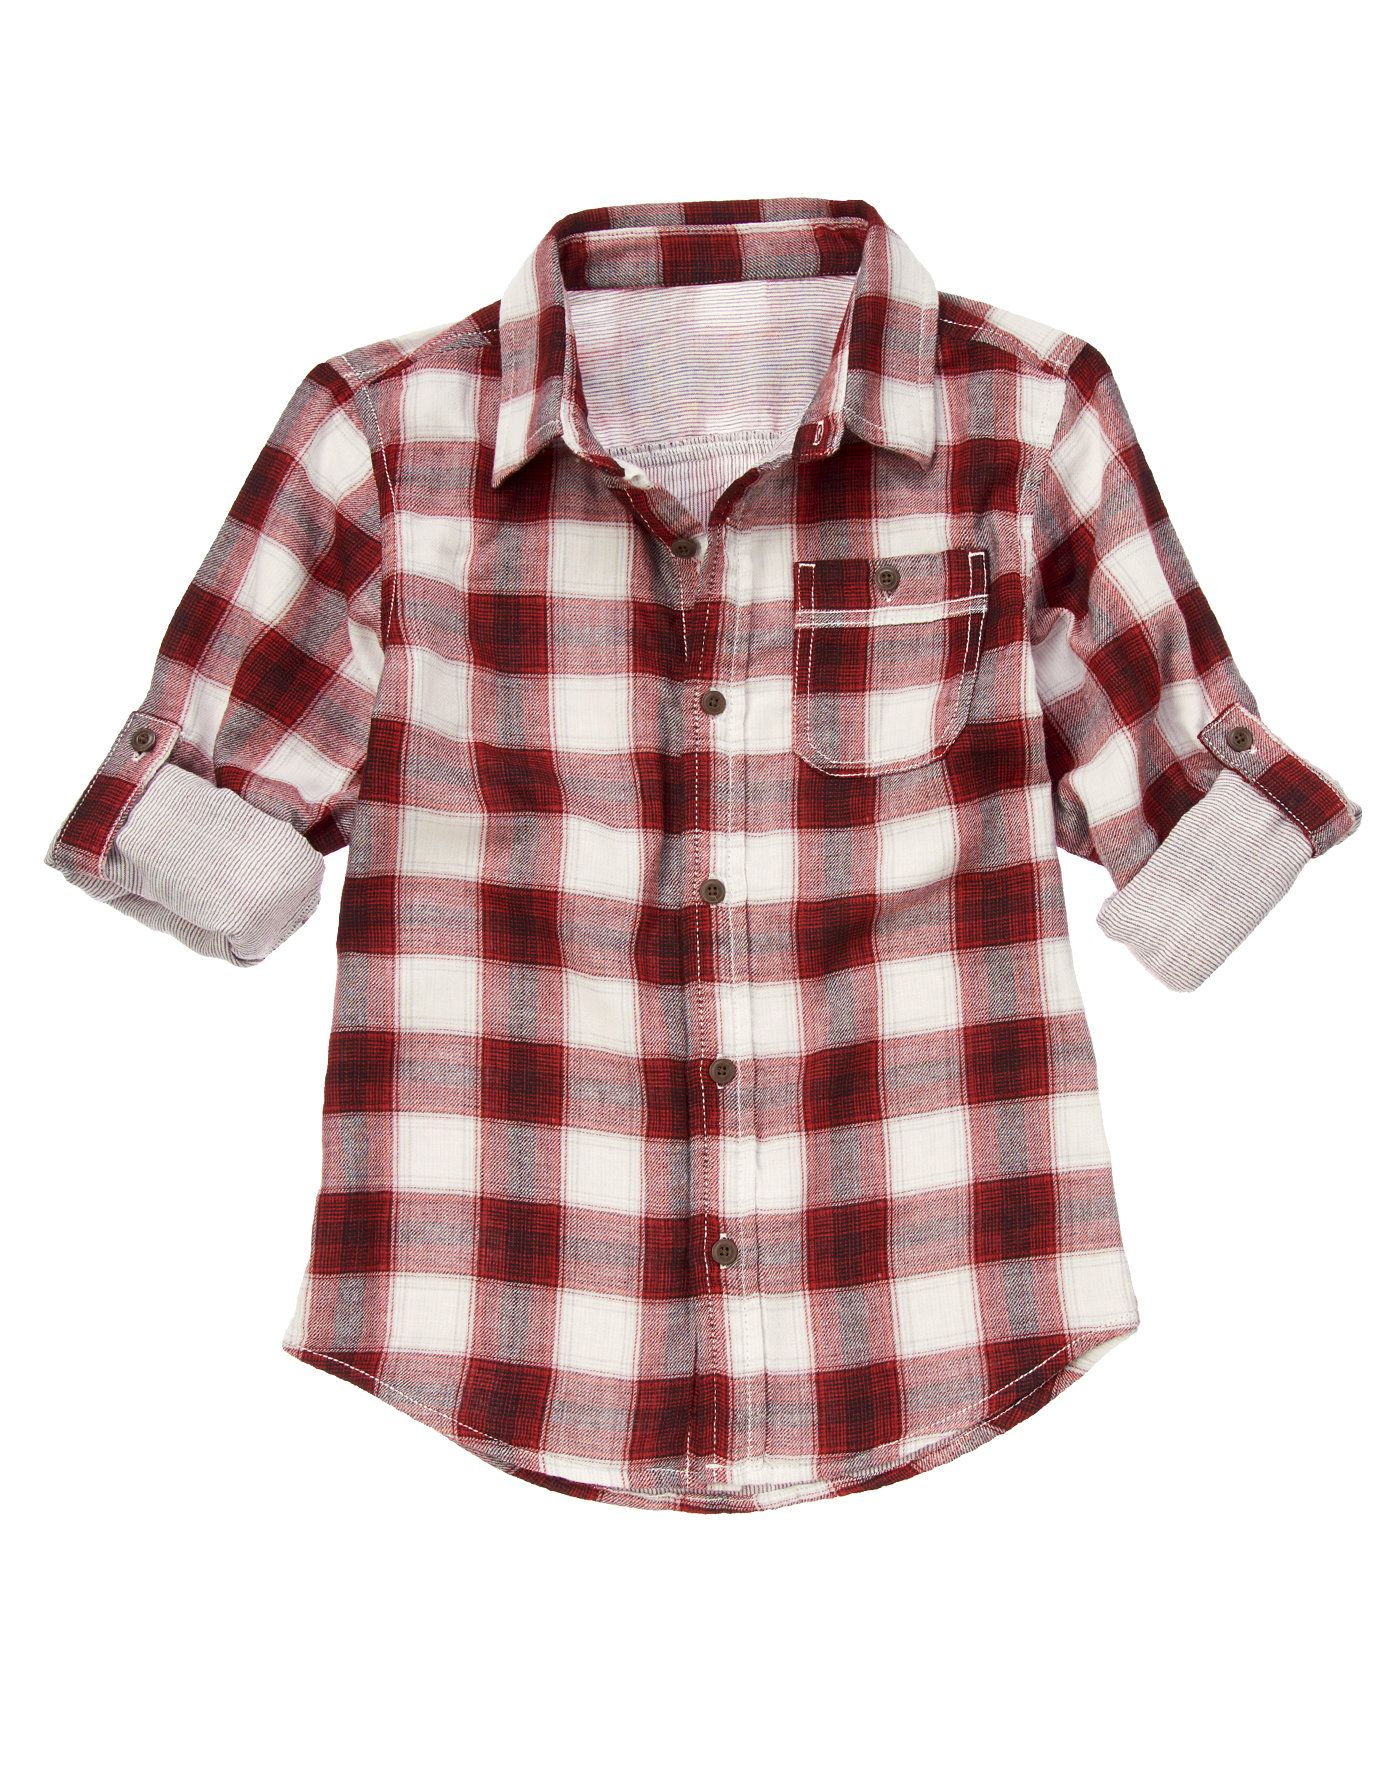 Extra soft plaid shirt with stripe lining and cool pockets.